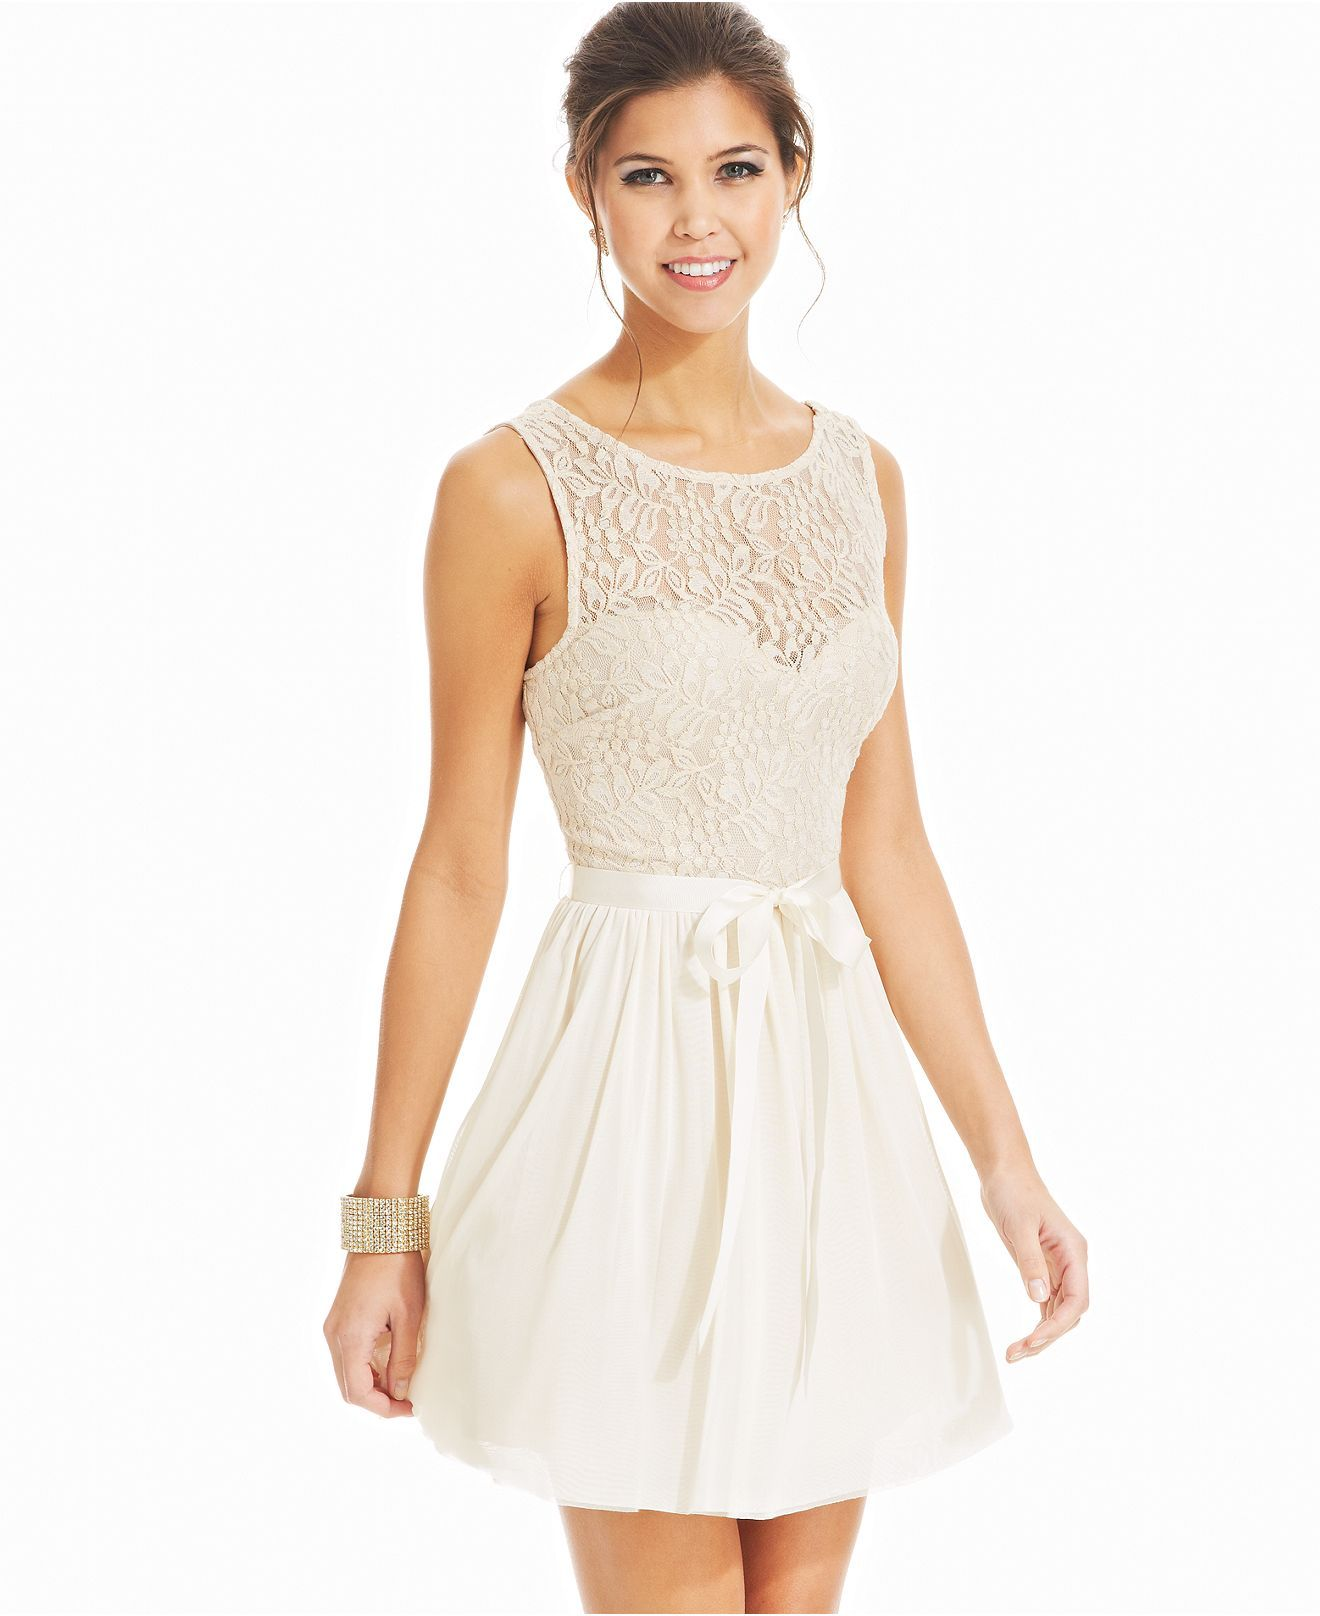 Speechless Juniors Dress, Sleeveless Lace Illusion - Juniors ...